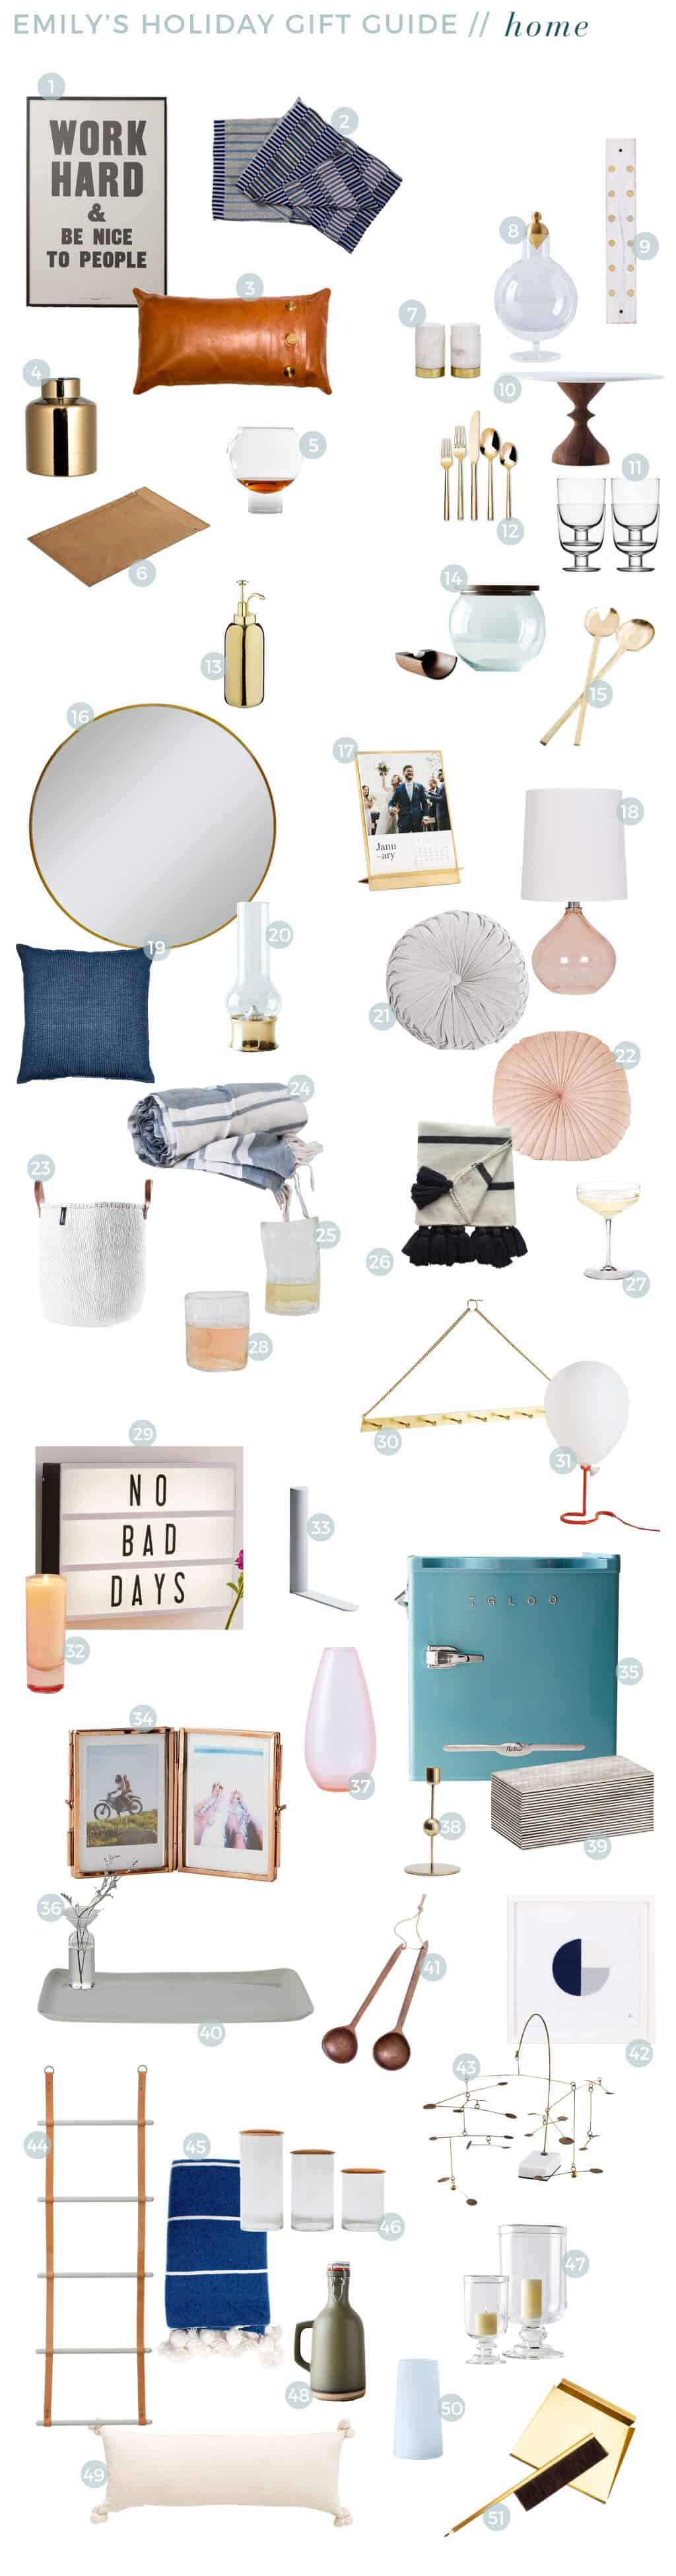 emily-henderson_holiday_gift-guide_2016_home_roundup